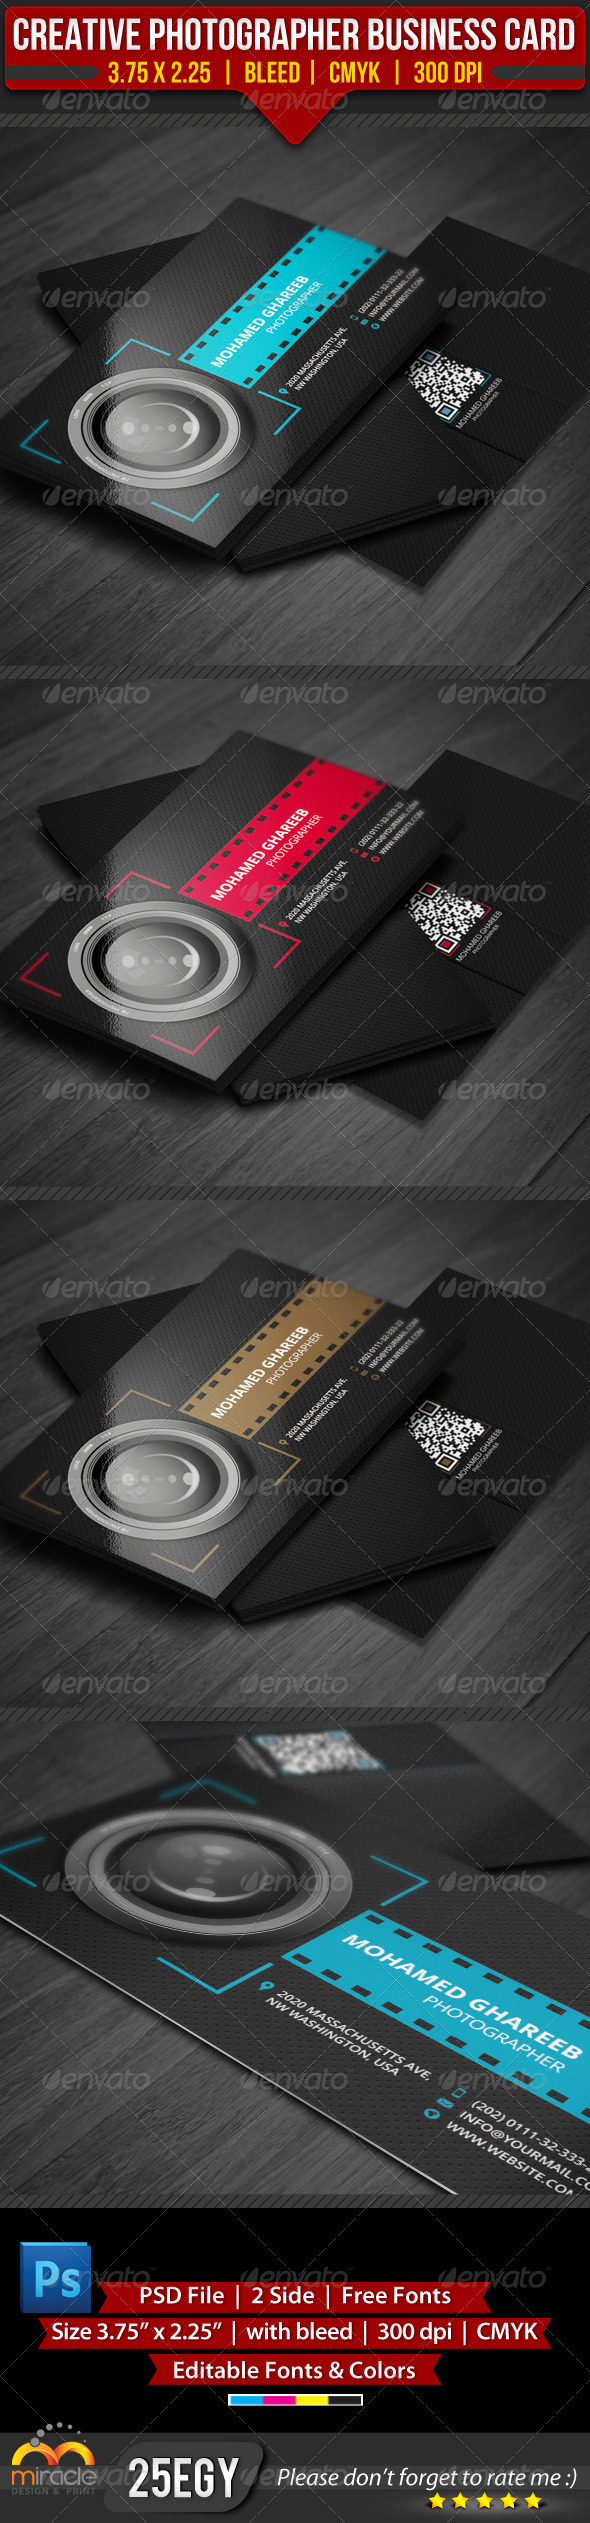 GraphicRiver Creative Photographer Business Card 3692859